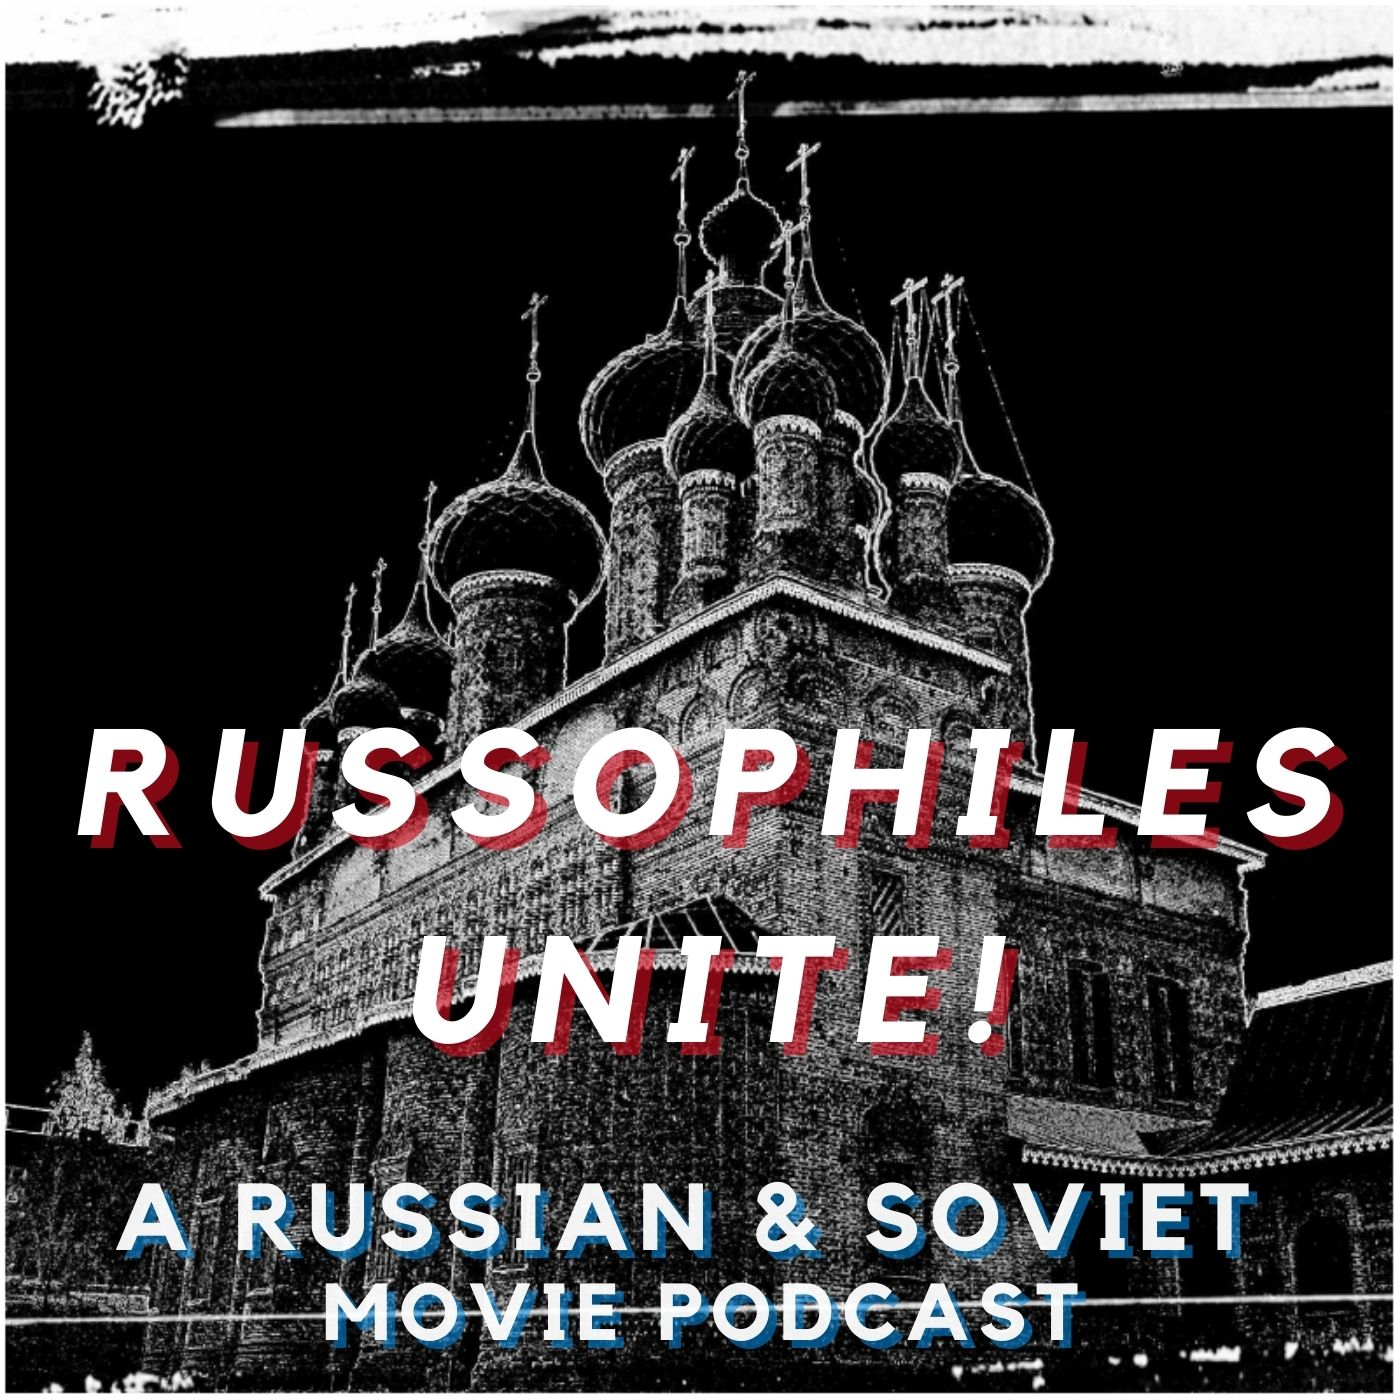 Interview with Alex Christofi, author of Dostoevsky in Love